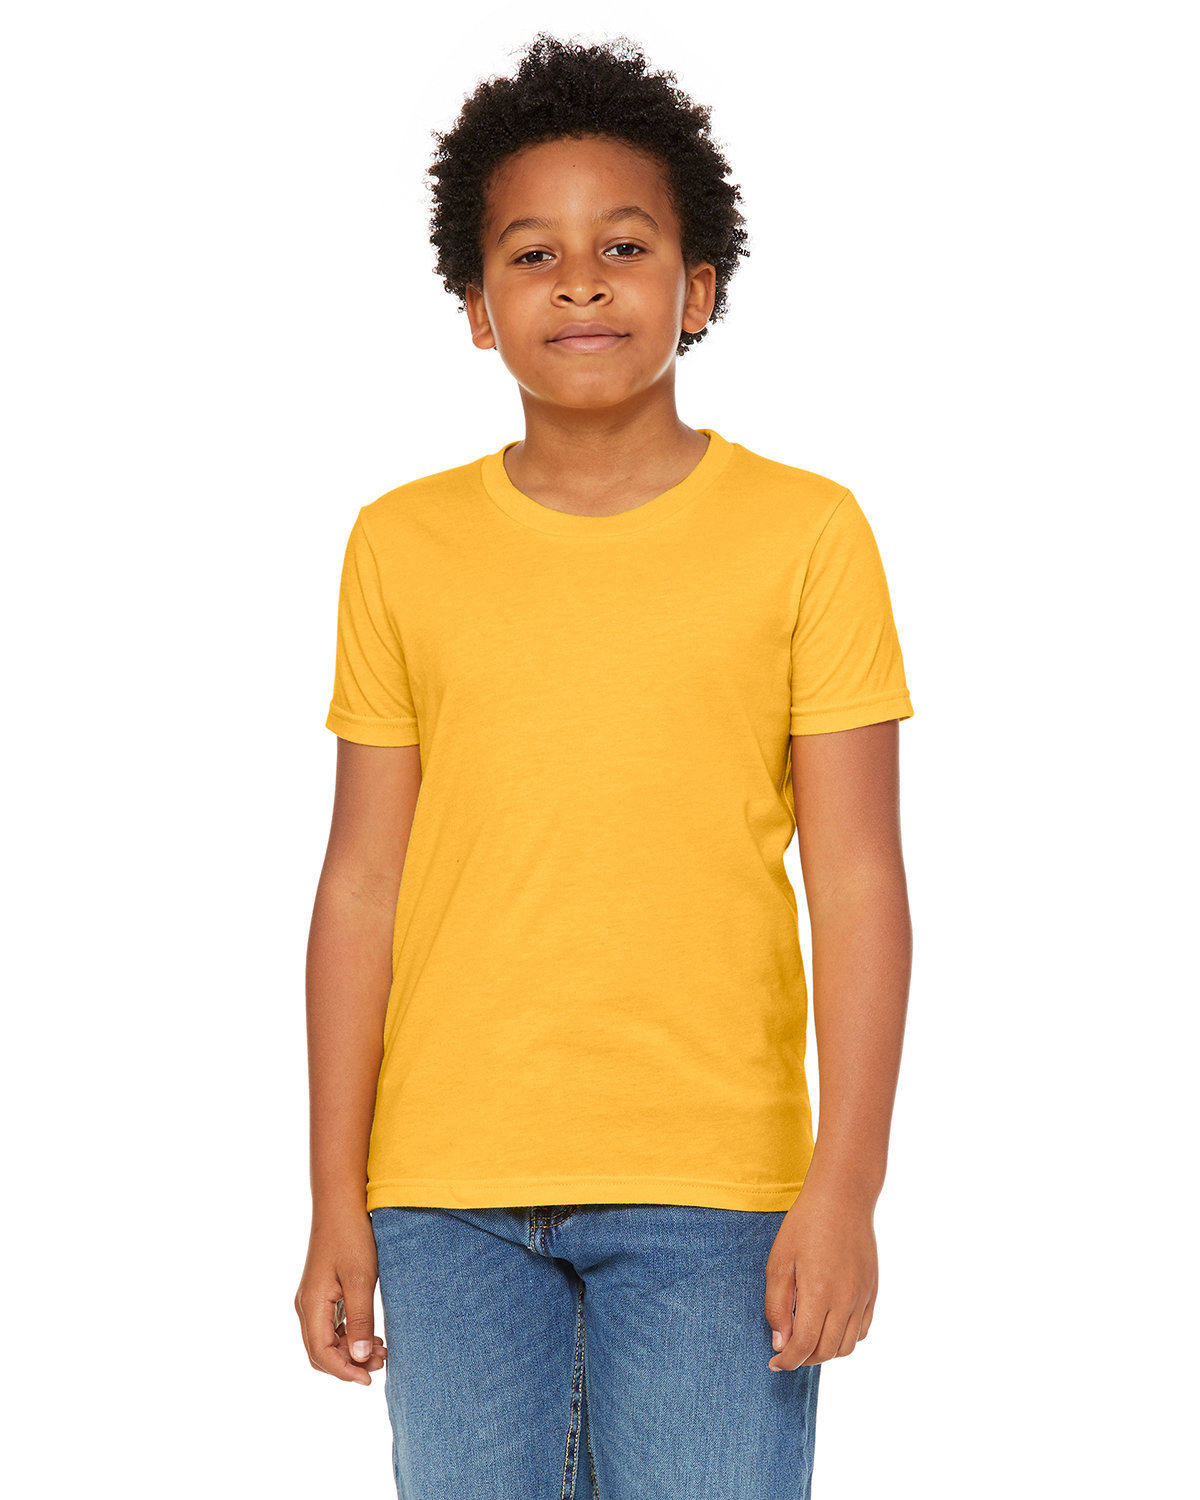 Bella + Canvas Youth Jersey T-Shirt HTHR YELLOW GOLD